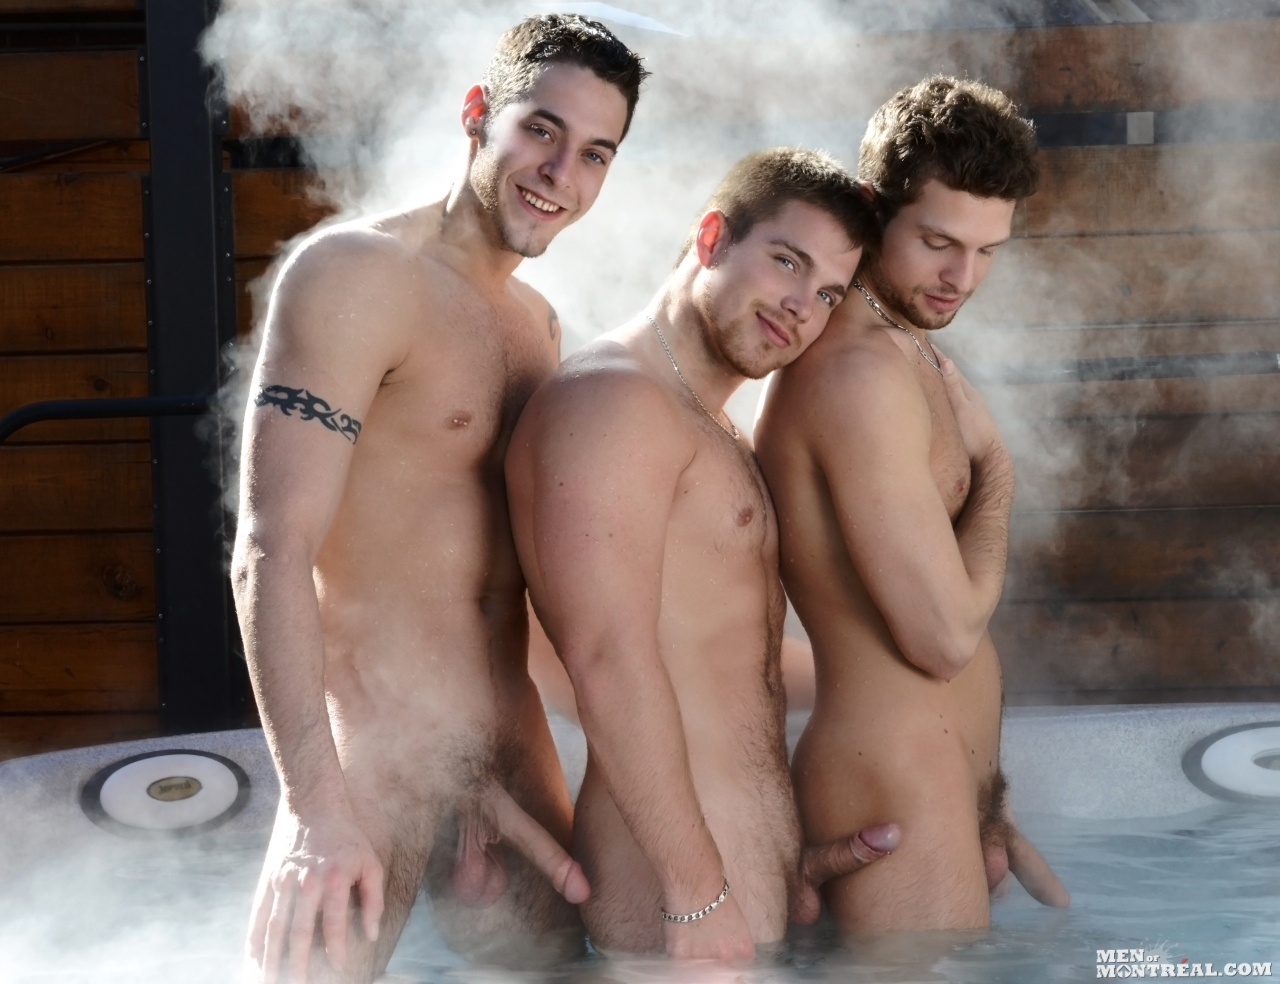 Men of Montreal – A Steaming Hot Winter Chill!